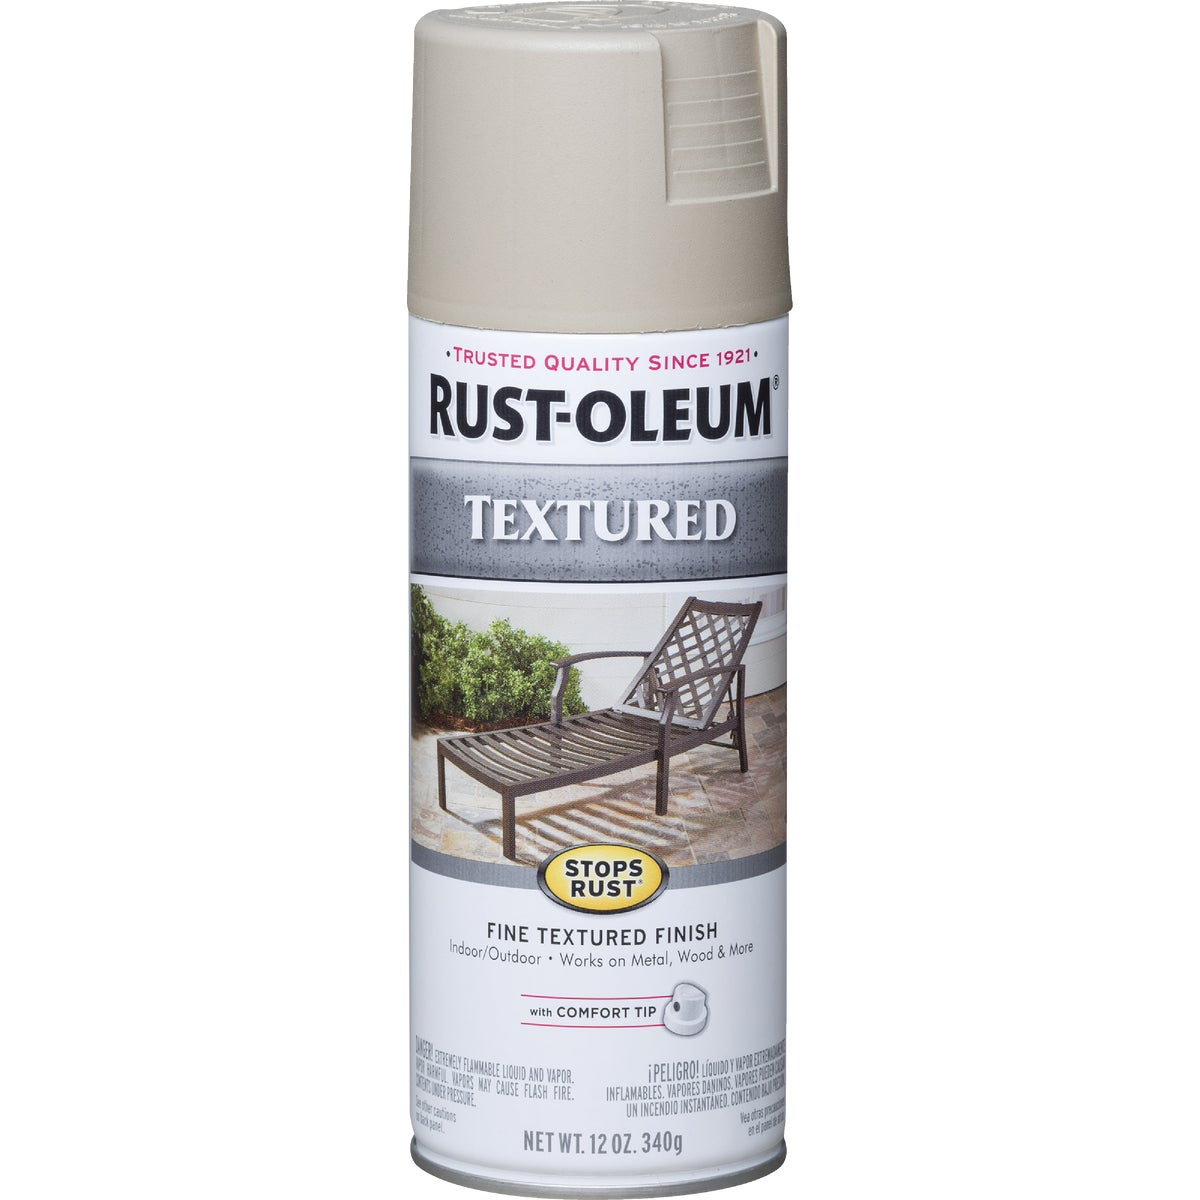 SANDSTN TEXT SPRAY PAINT - 7223-830 by Rustoleum